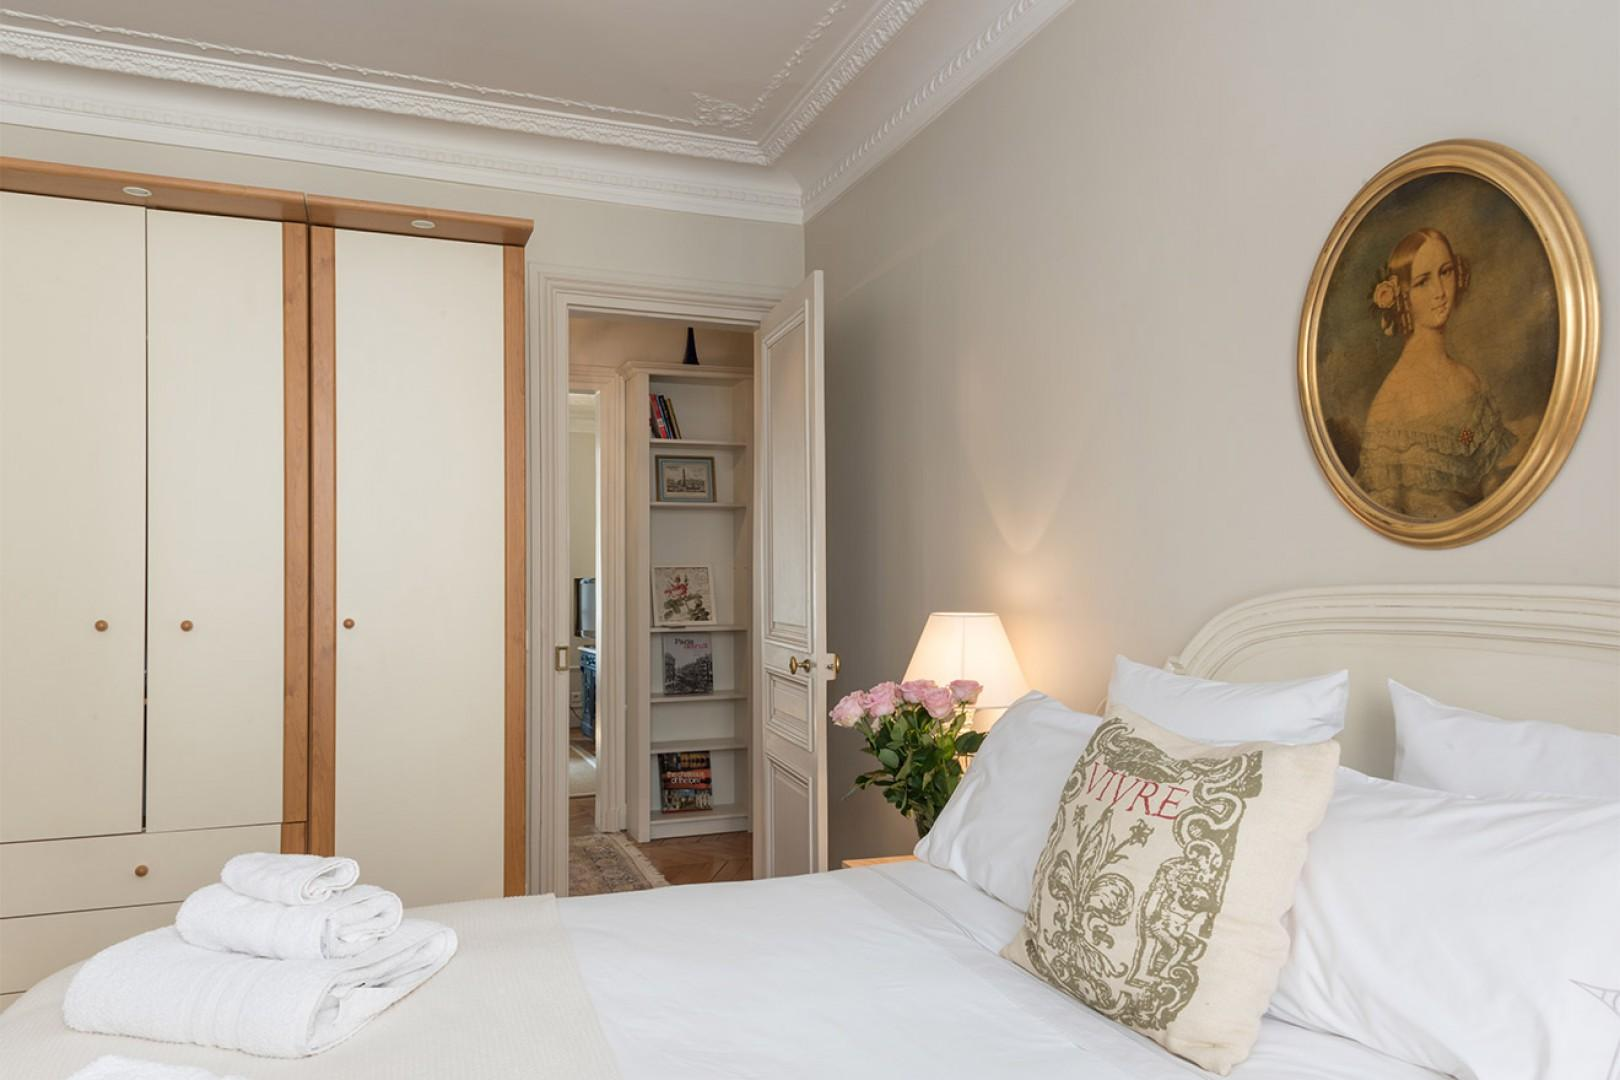 There are large built-in closets in bedroom 1 for all your belongings.